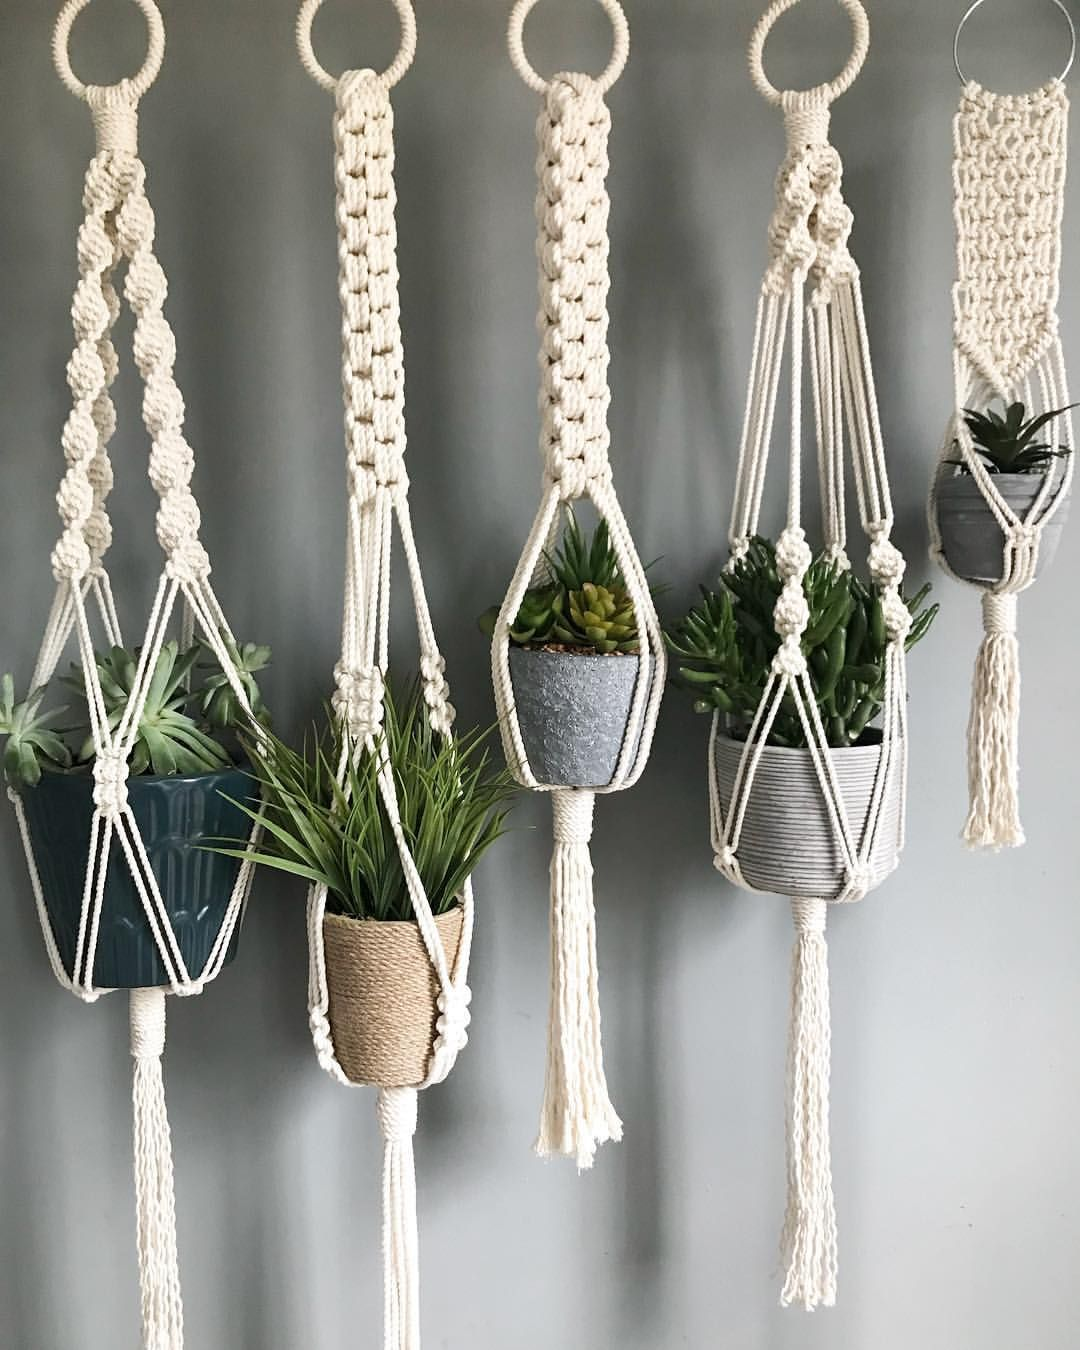 pin by knotly on macrame plant hangers macram macrame. Black Bedroom Furniture Sets. Home Design Ideas